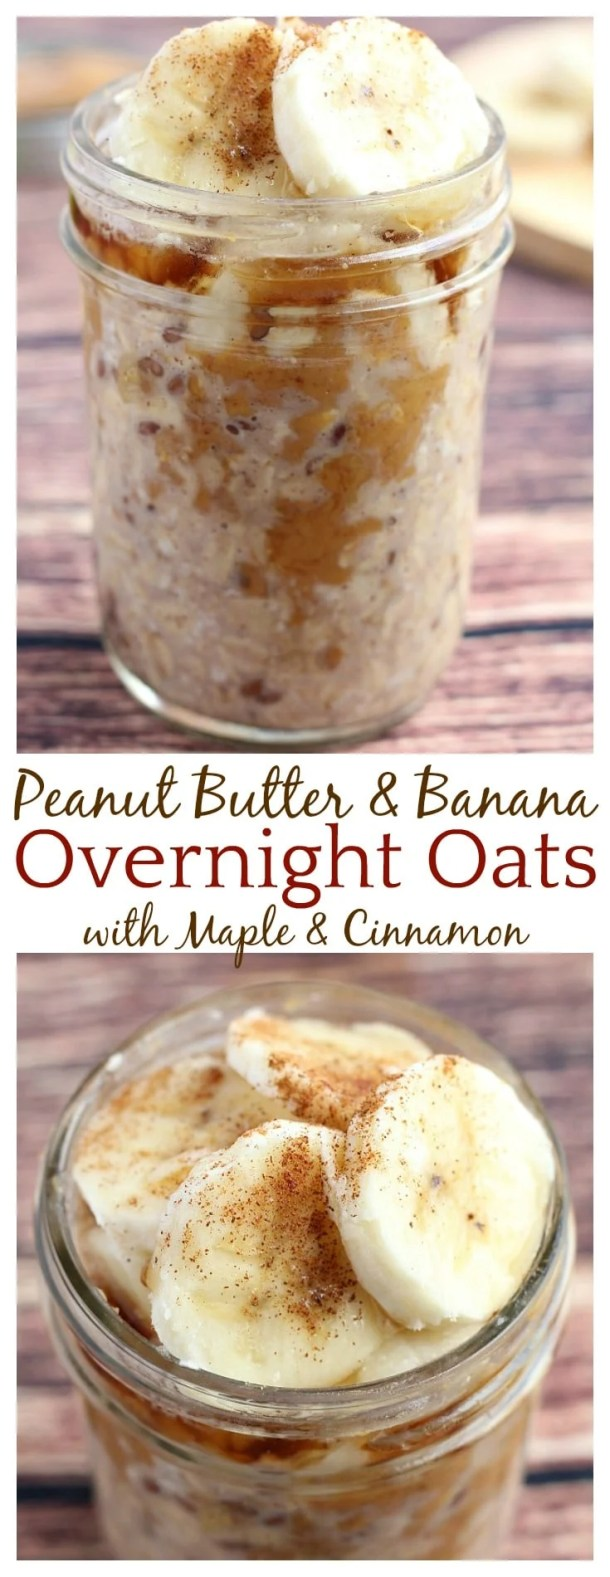 15 Classic Overnight Oats Recipes You Should Try